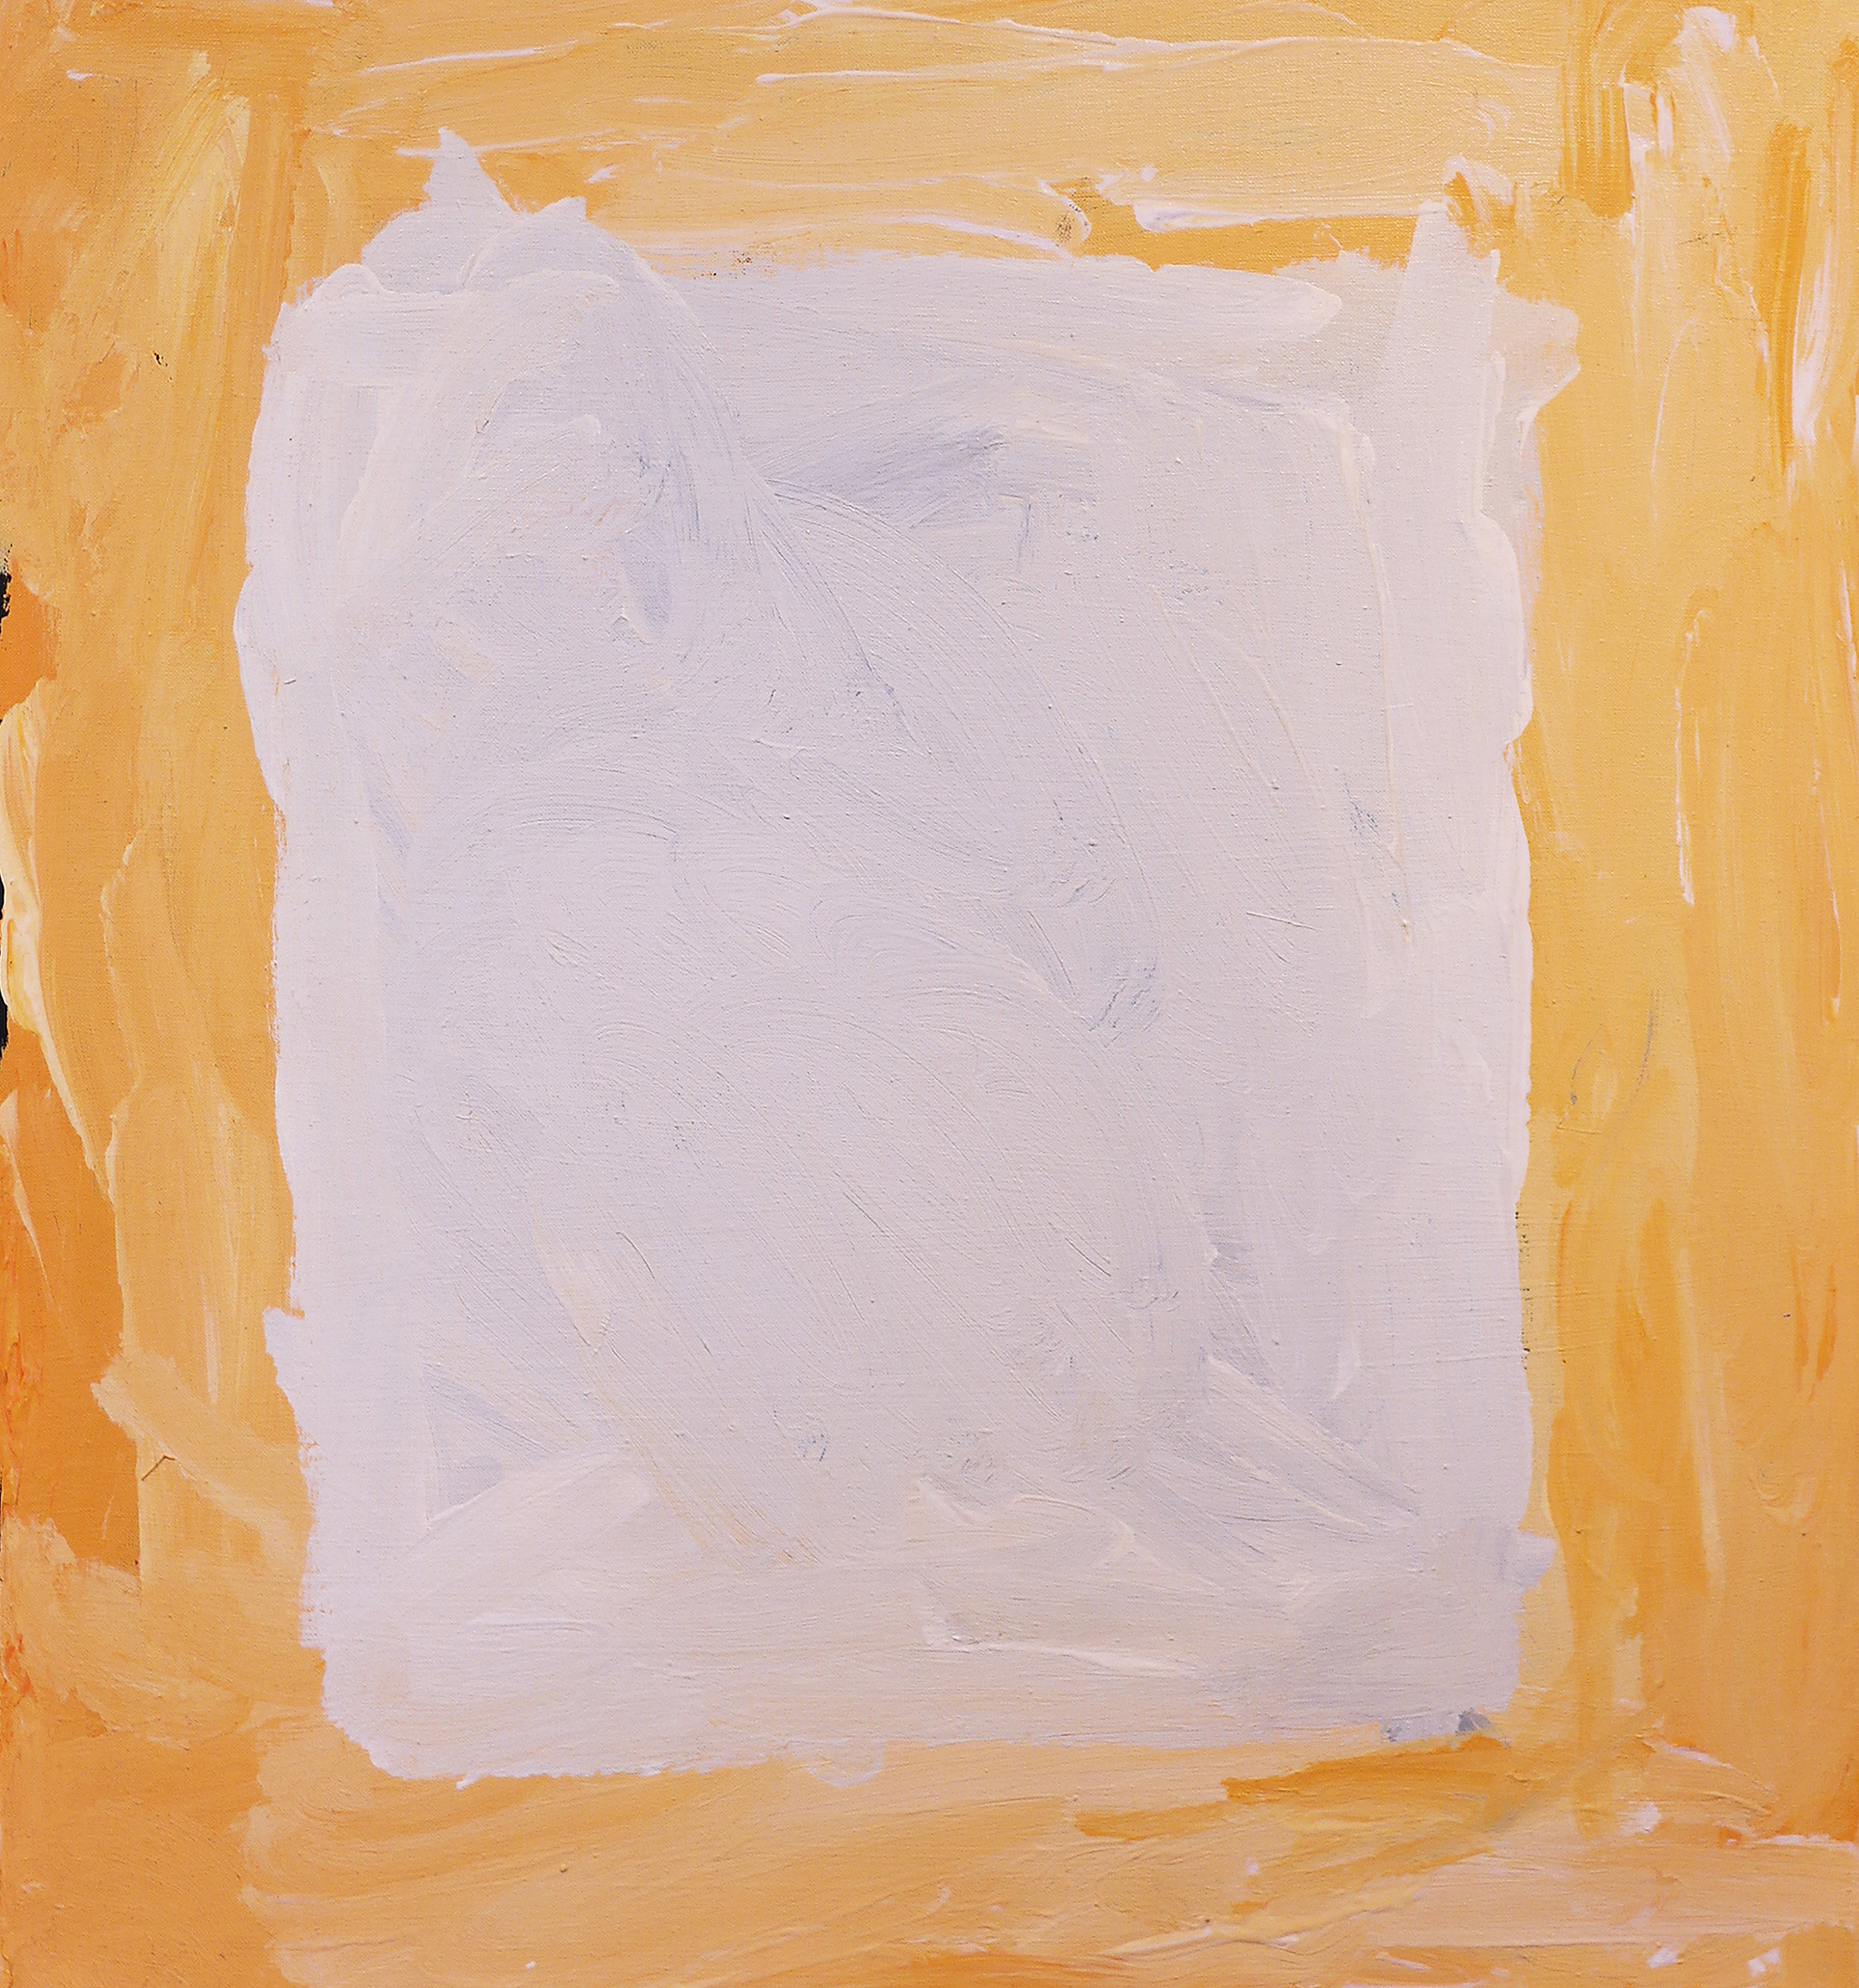 """Sandy Brumby  Victory Downs  Acrylic on canvas 24"""" x 22"""" (61 x 56 cm) Ninuku Arts Catalog #14-58   EMAIL INQUIRY"""